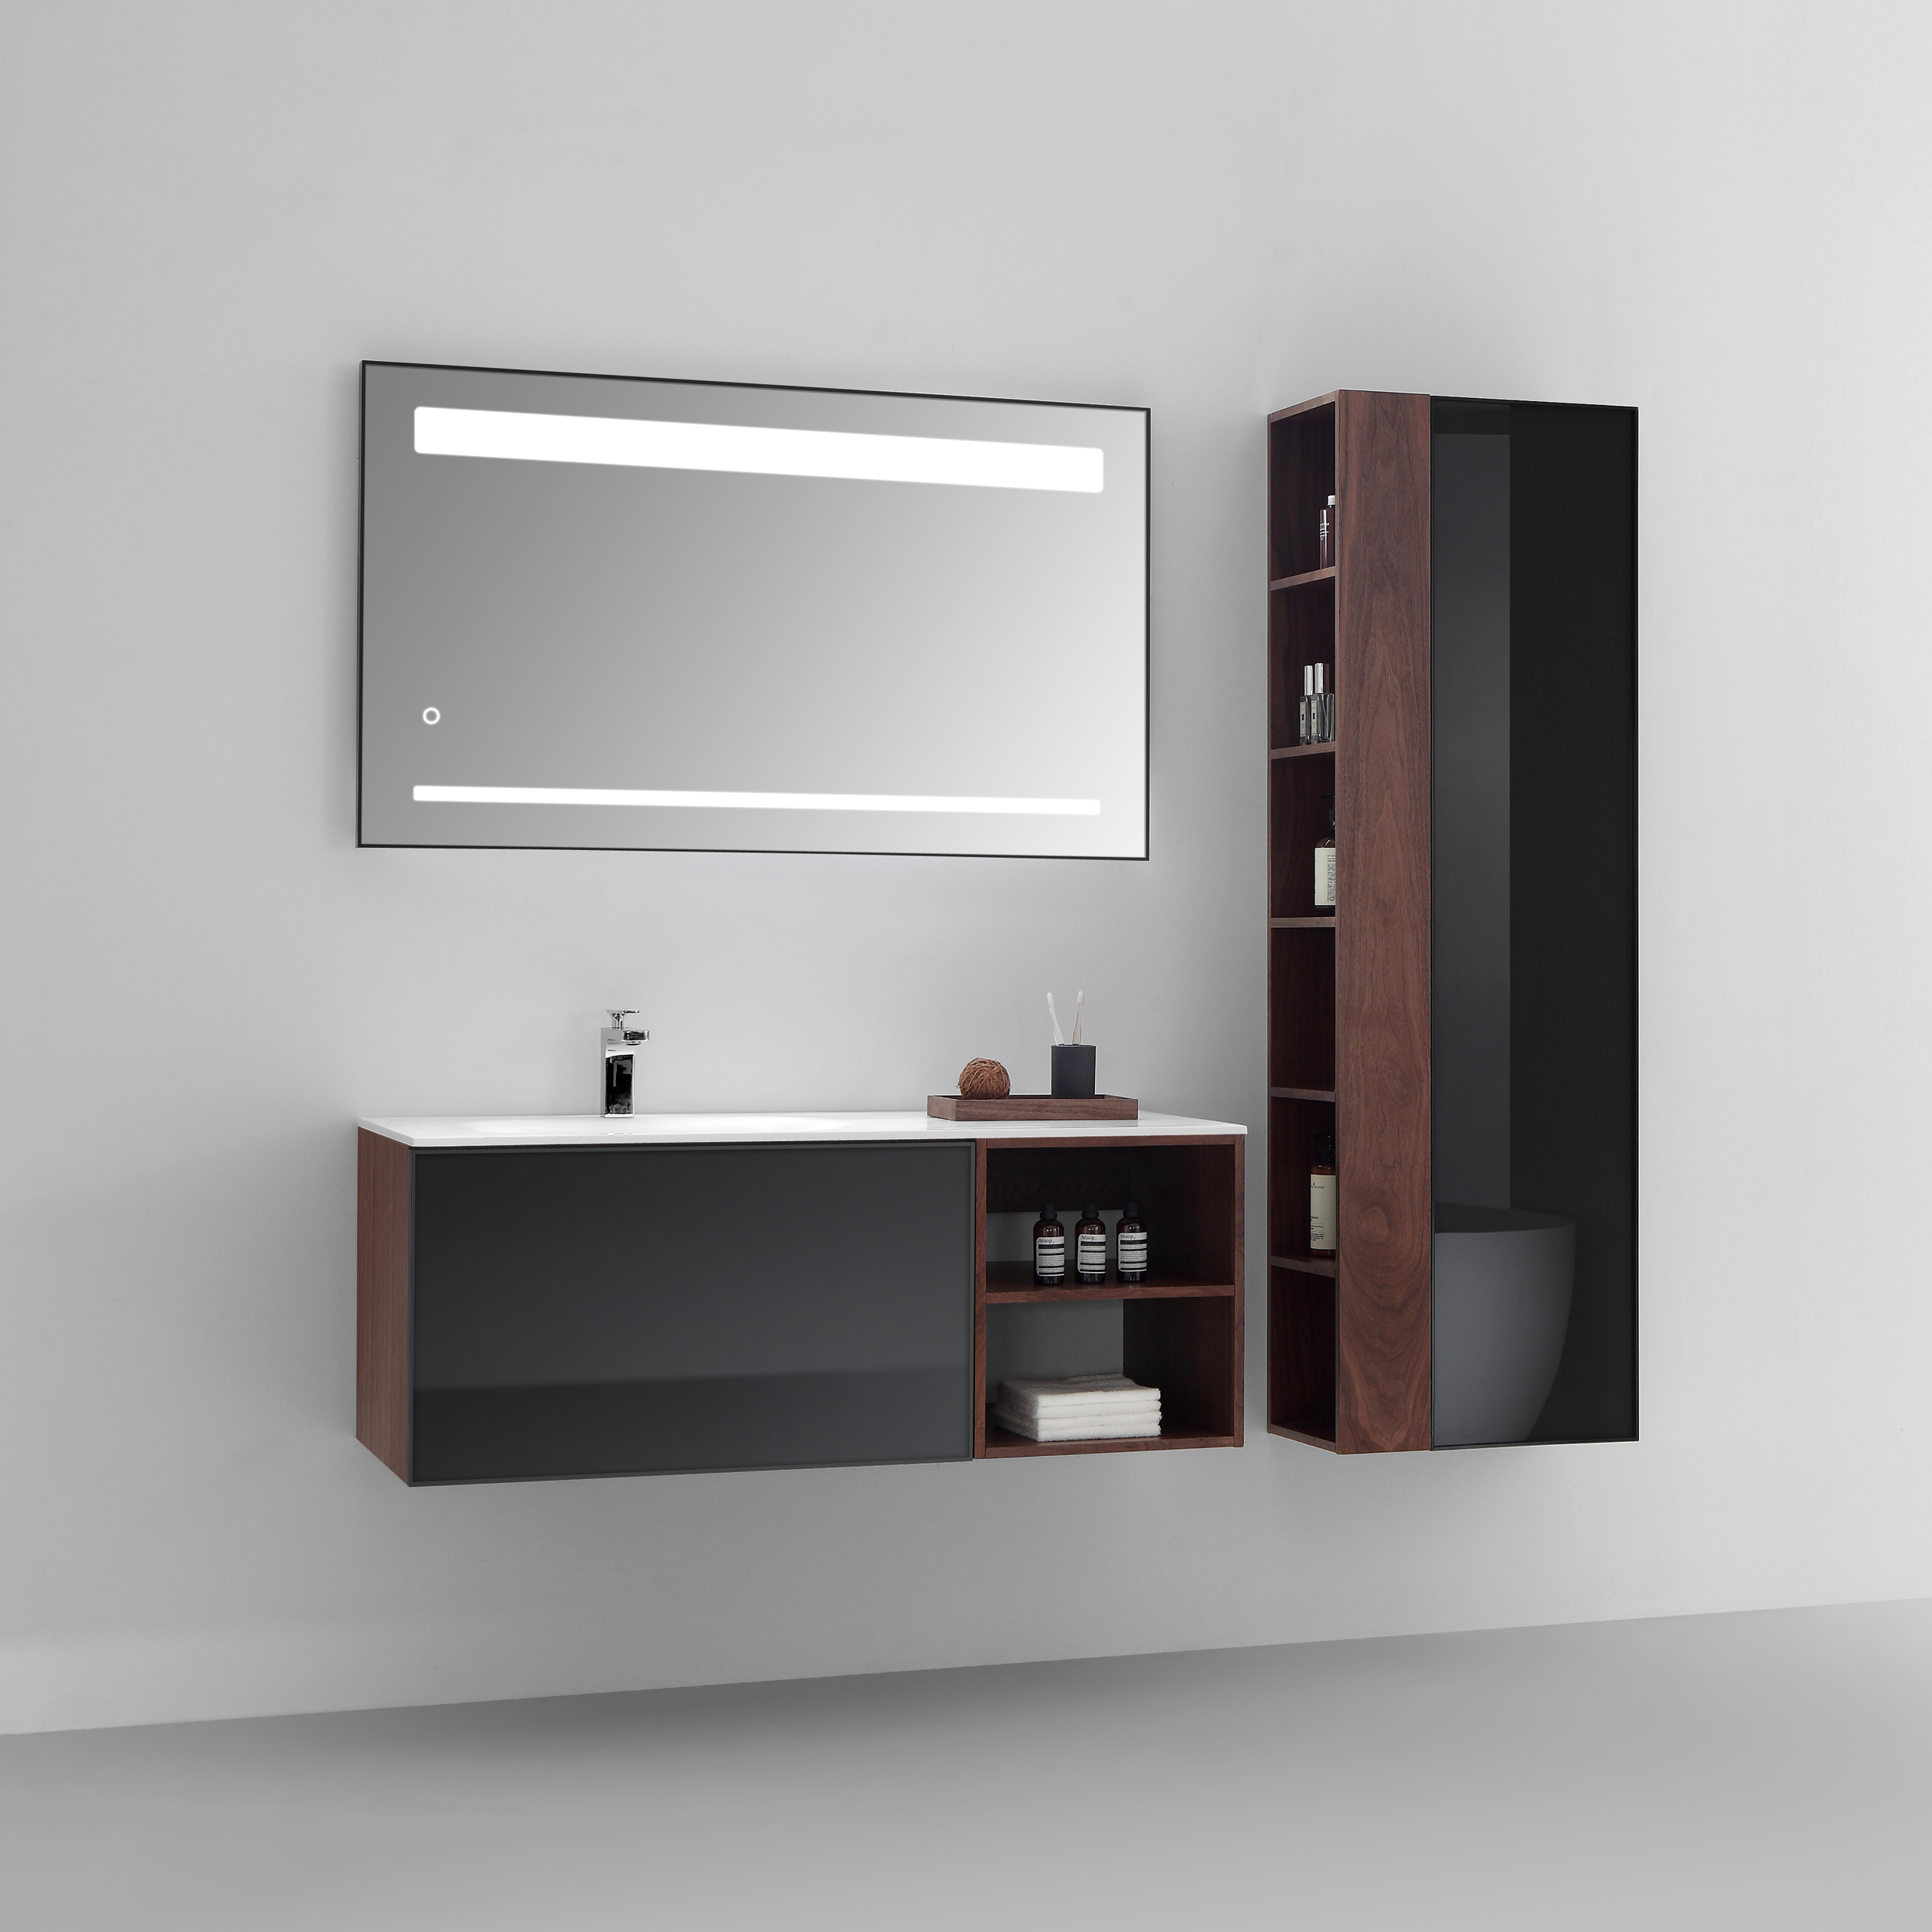 porcelain mount small wooden drawer designs front appearances to stained full washbasin frameless mirrors ideas mixed sink hanging with wall white mounted oval size of design cabinet rattan vessel bathro storage furniture also larger and bathroom pull cool mirror simple above green ceramic out create remarkable interior